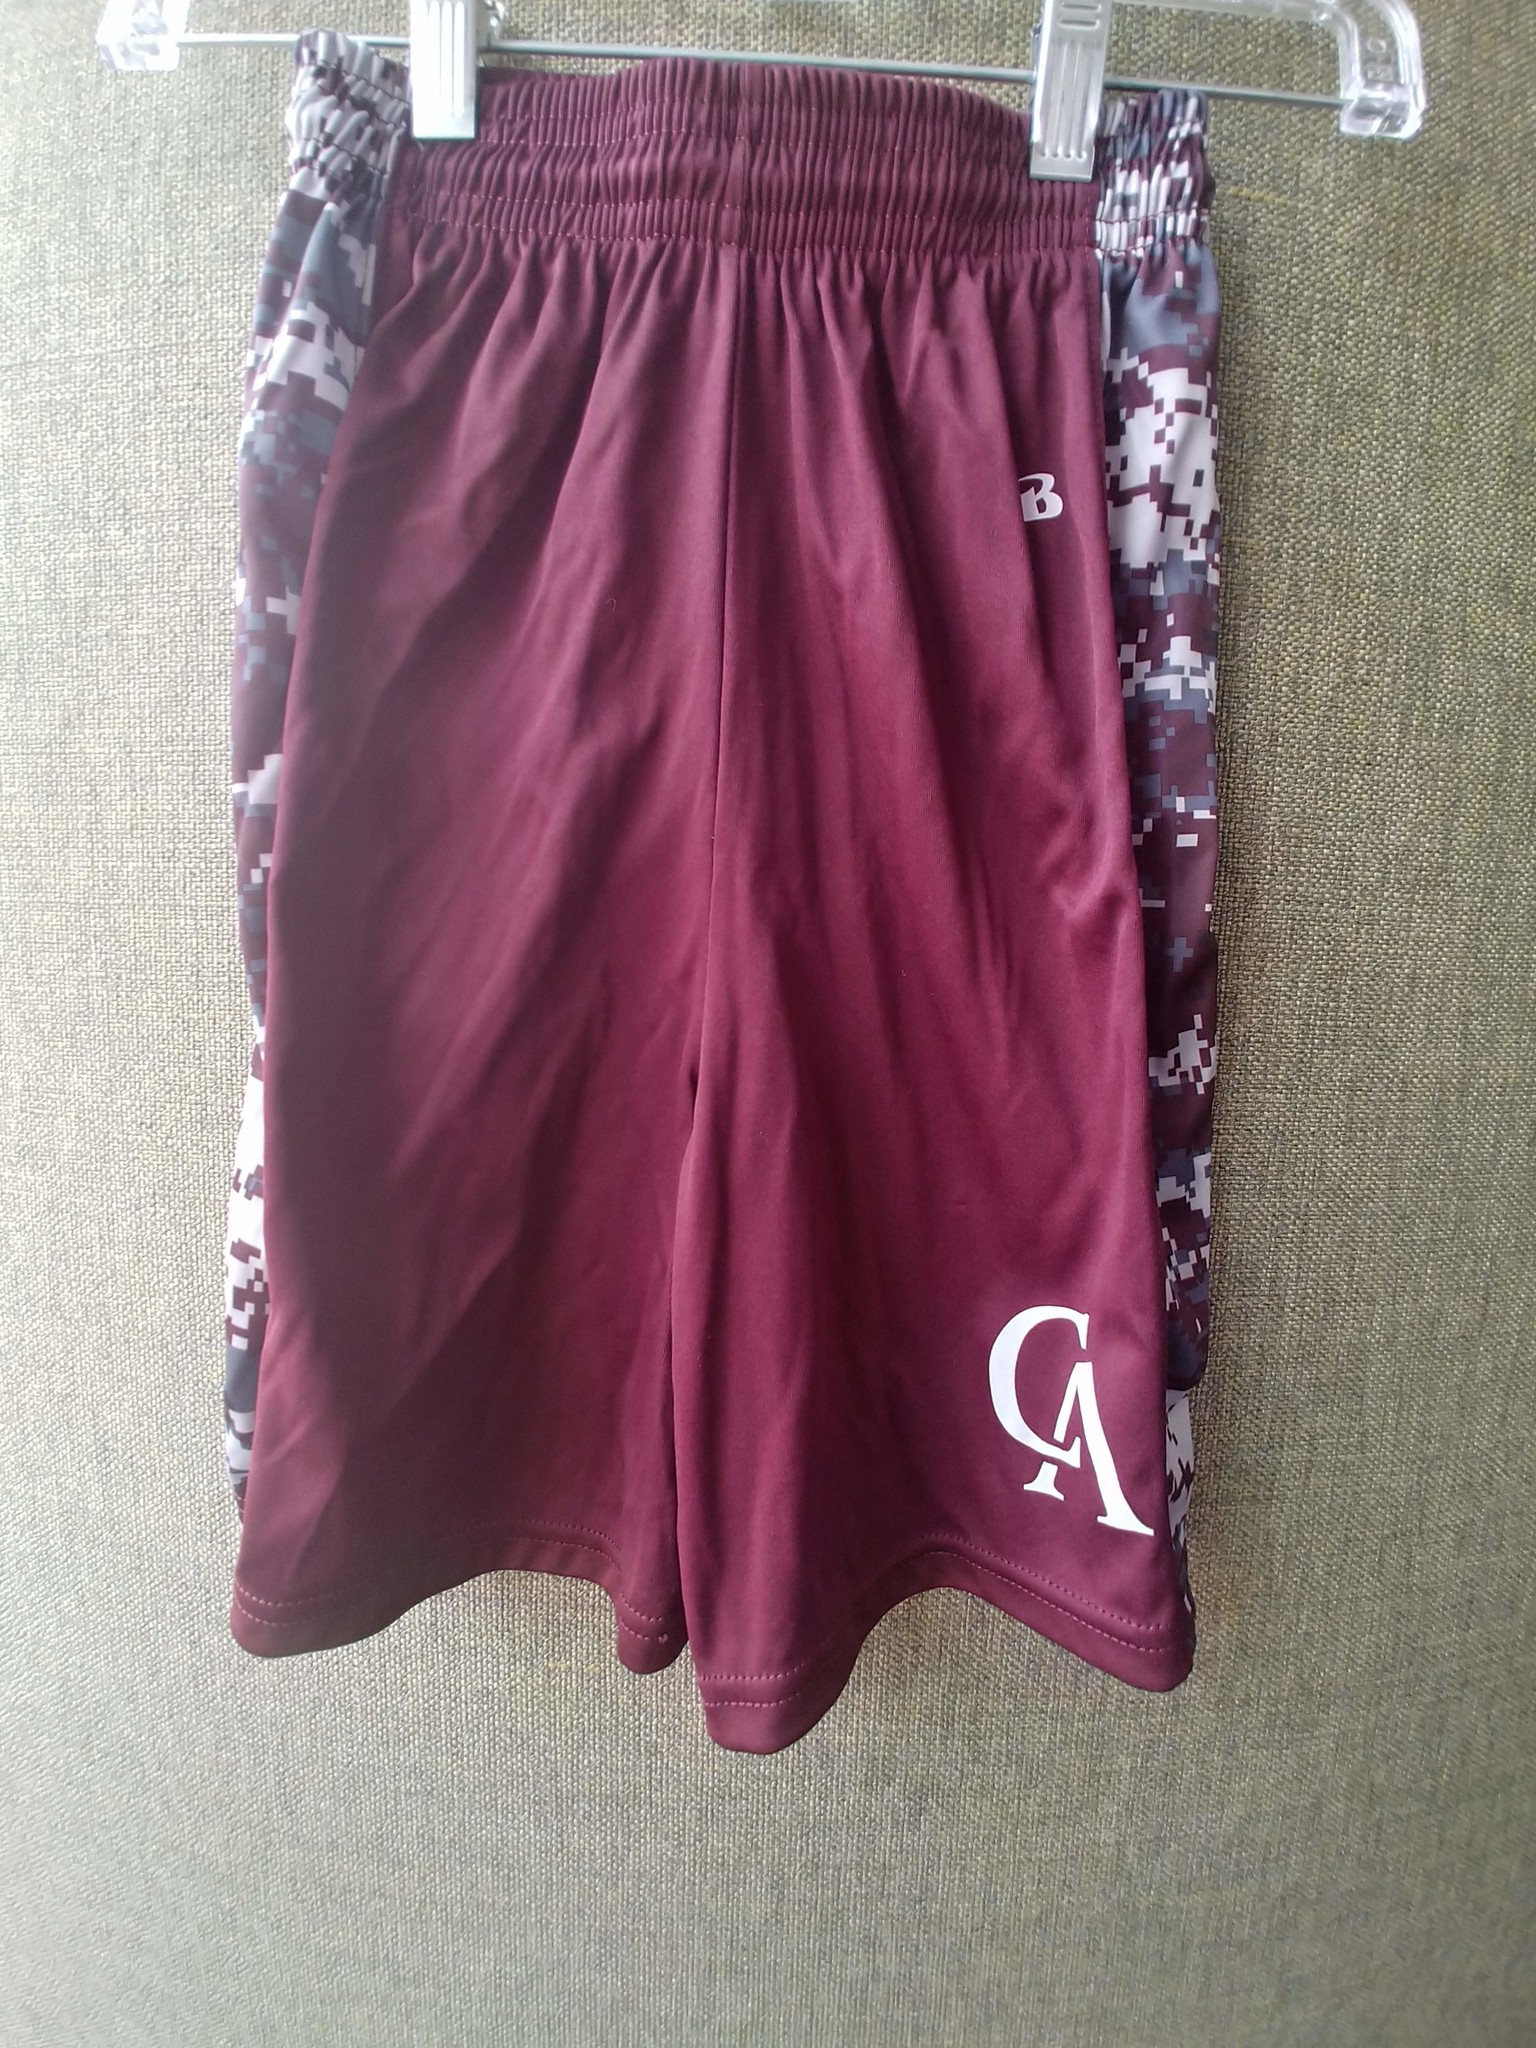 Badger Badger Youth Shorts